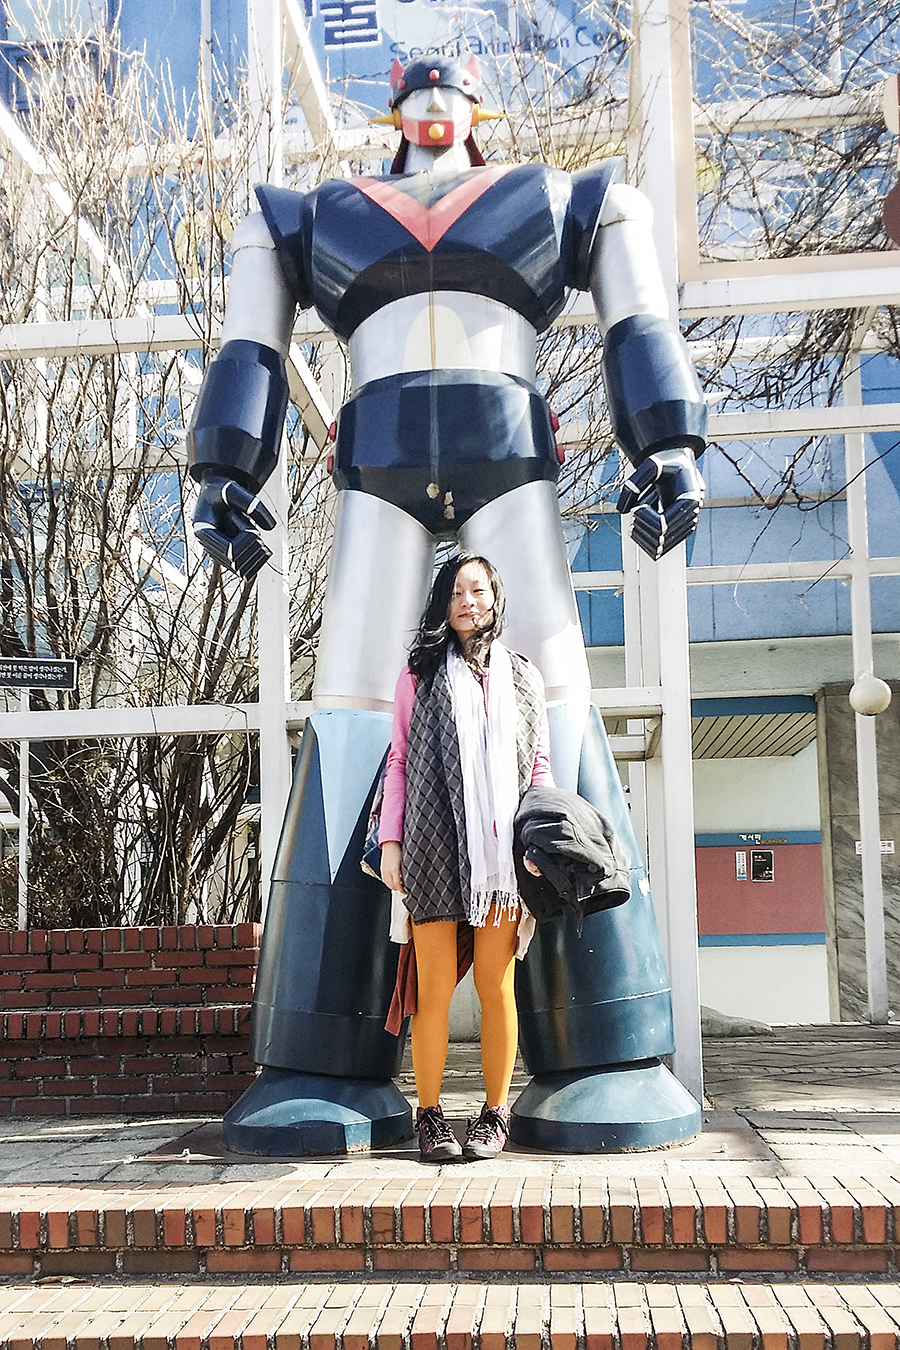 Posing with giant robot sculpture at Seoul Animation Center, South Korea.